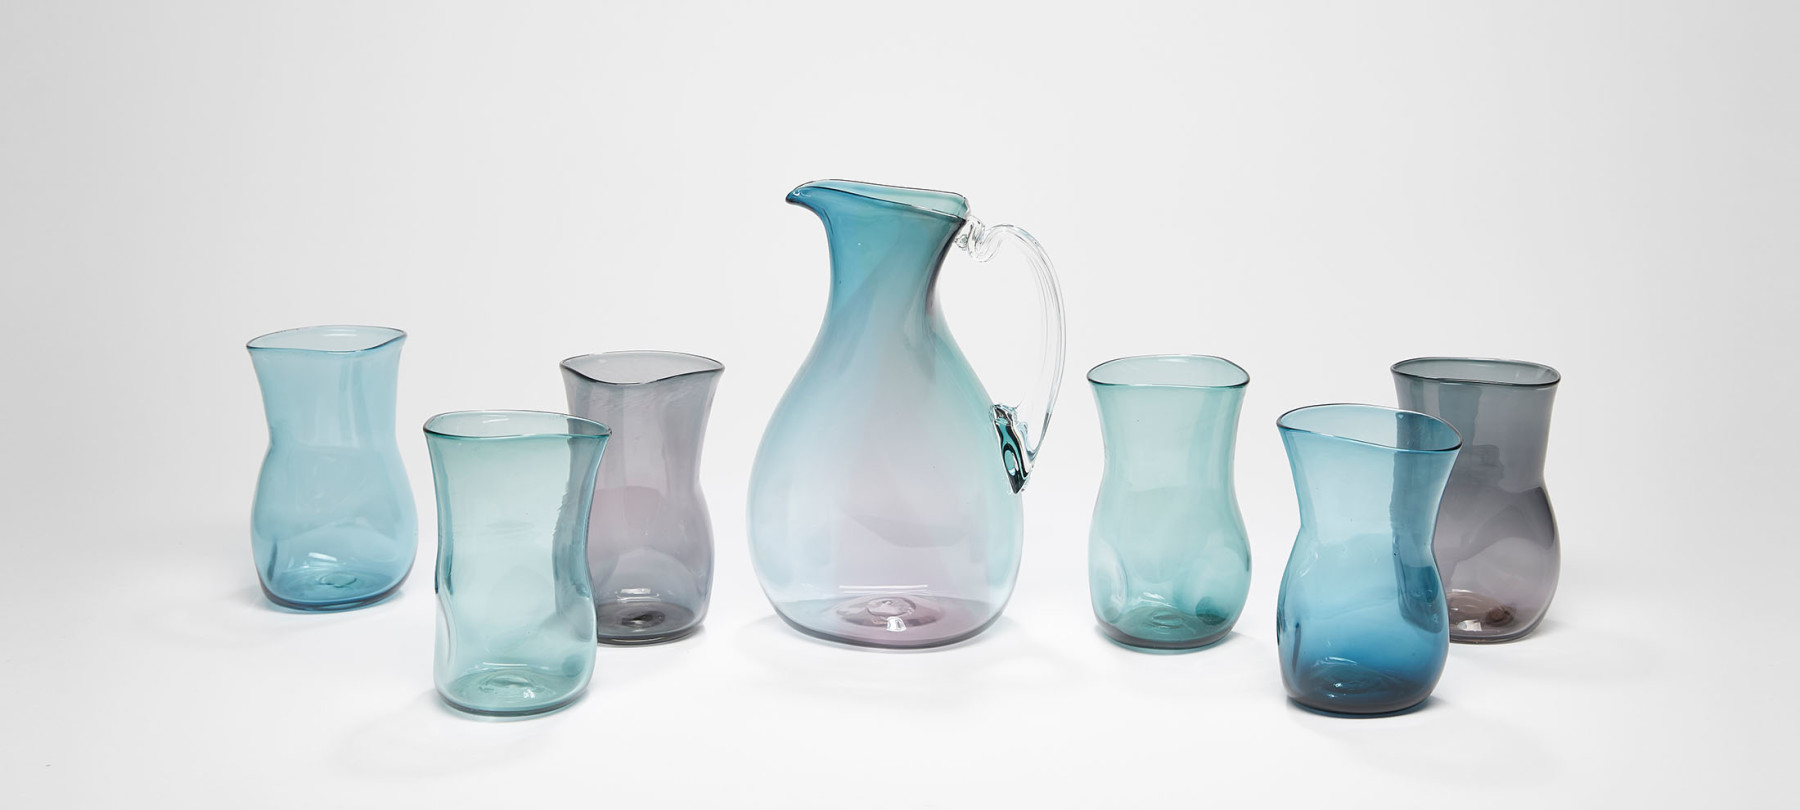 Layne Rowe Blue and Grey Jug and Glasses 2020